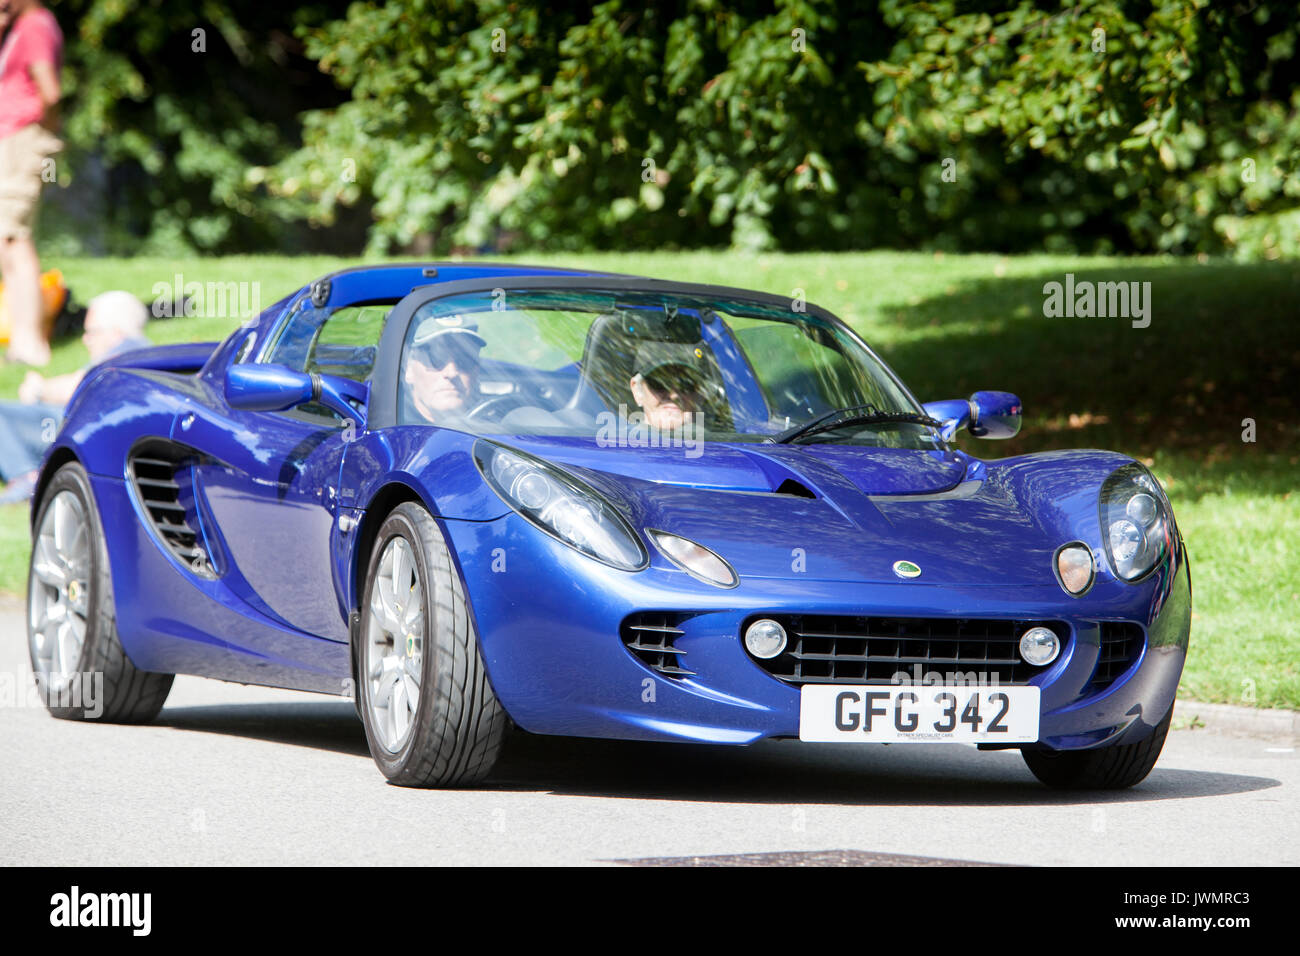 lotus elise stock photos lotus elise stock images alamy. Black Bedroom Furniture Sets. Home Design Ideas